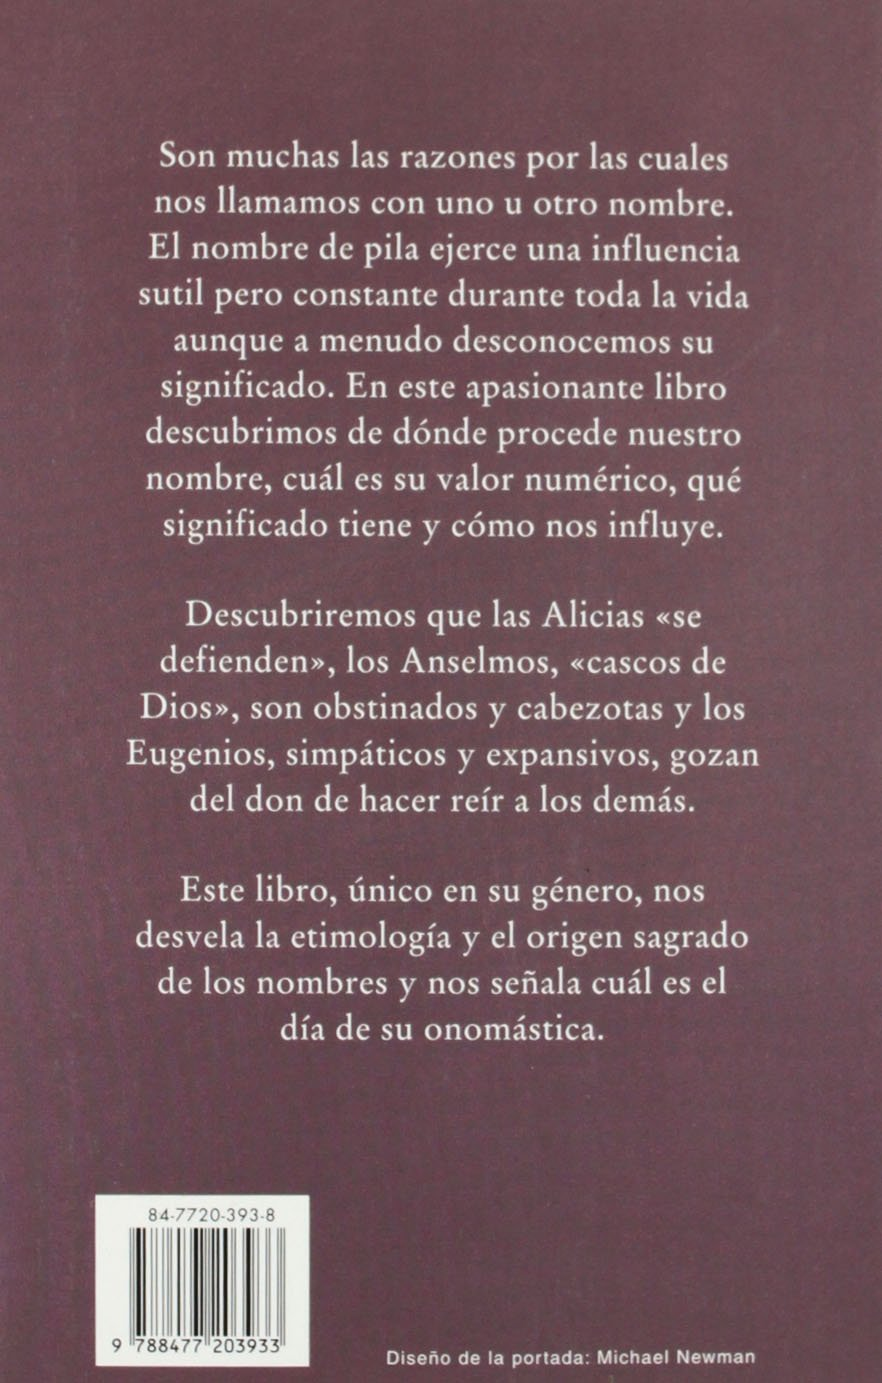 Amazon.com: Libro De Los Nombres / The book of the Names (Spanish Edition) (9788477203933): Obelisco: Books